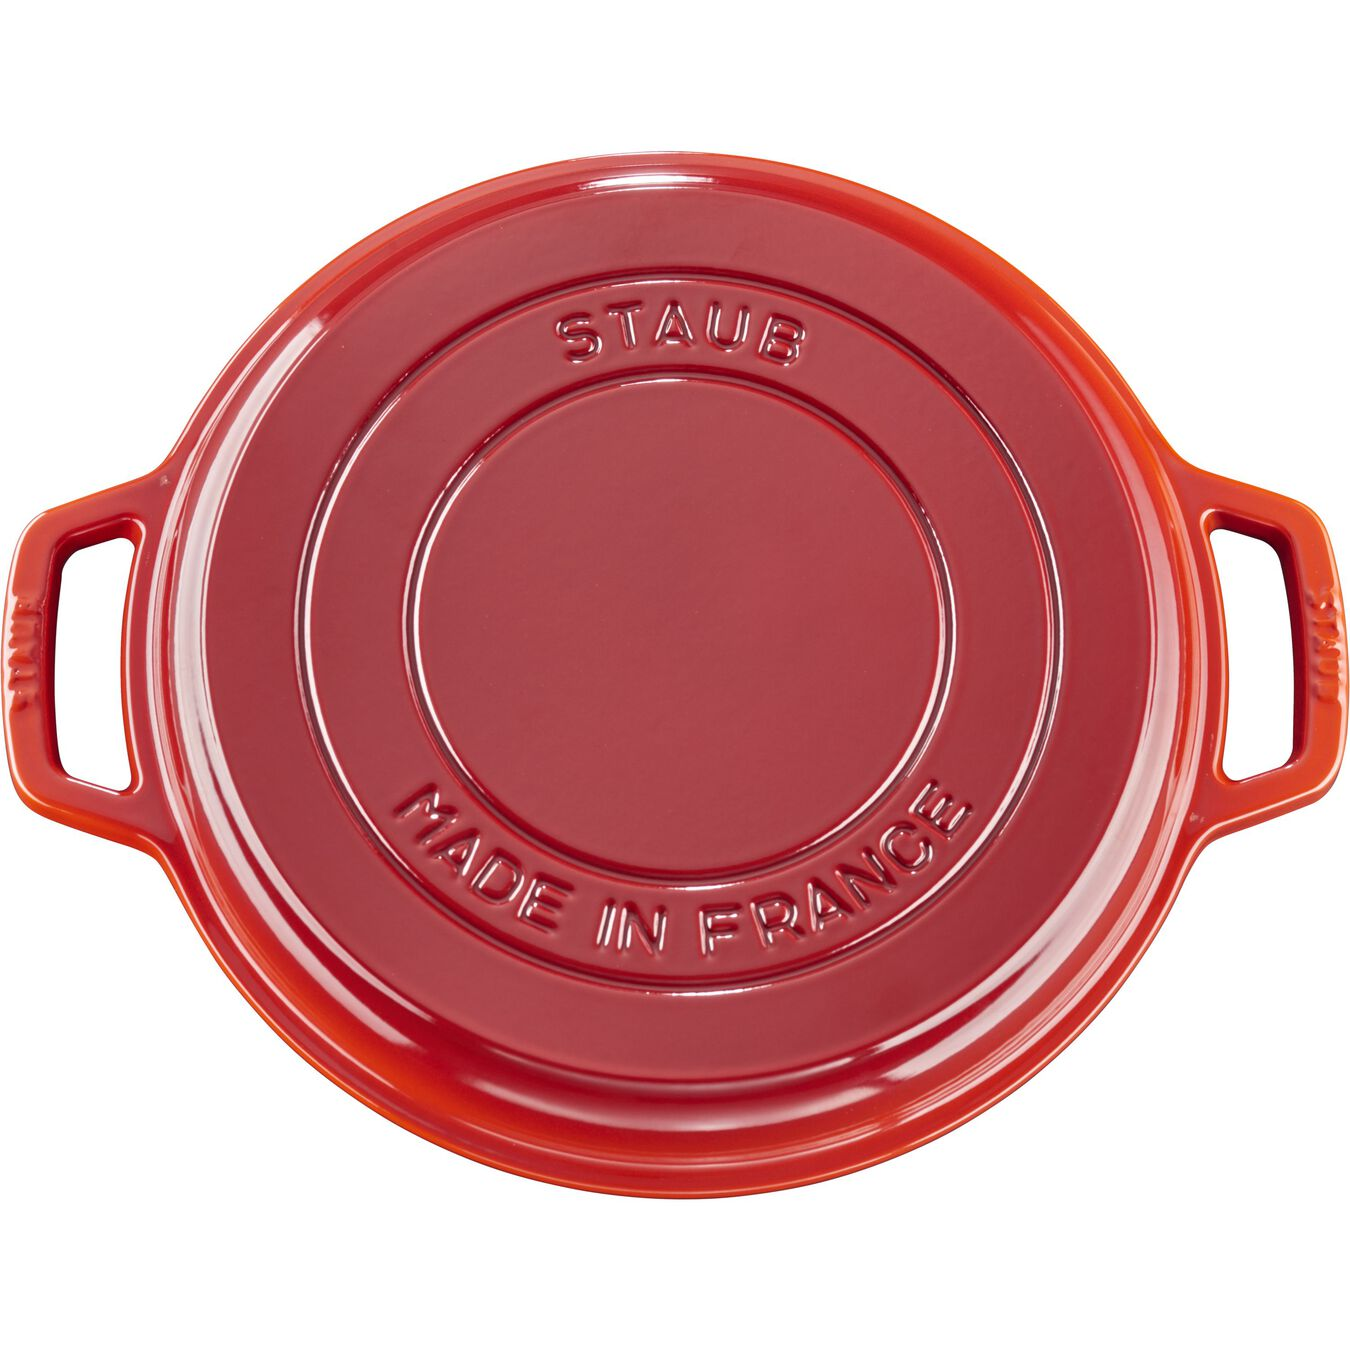 6 l round Braise + Grill, cherry - Visual Imperfections,,large 6